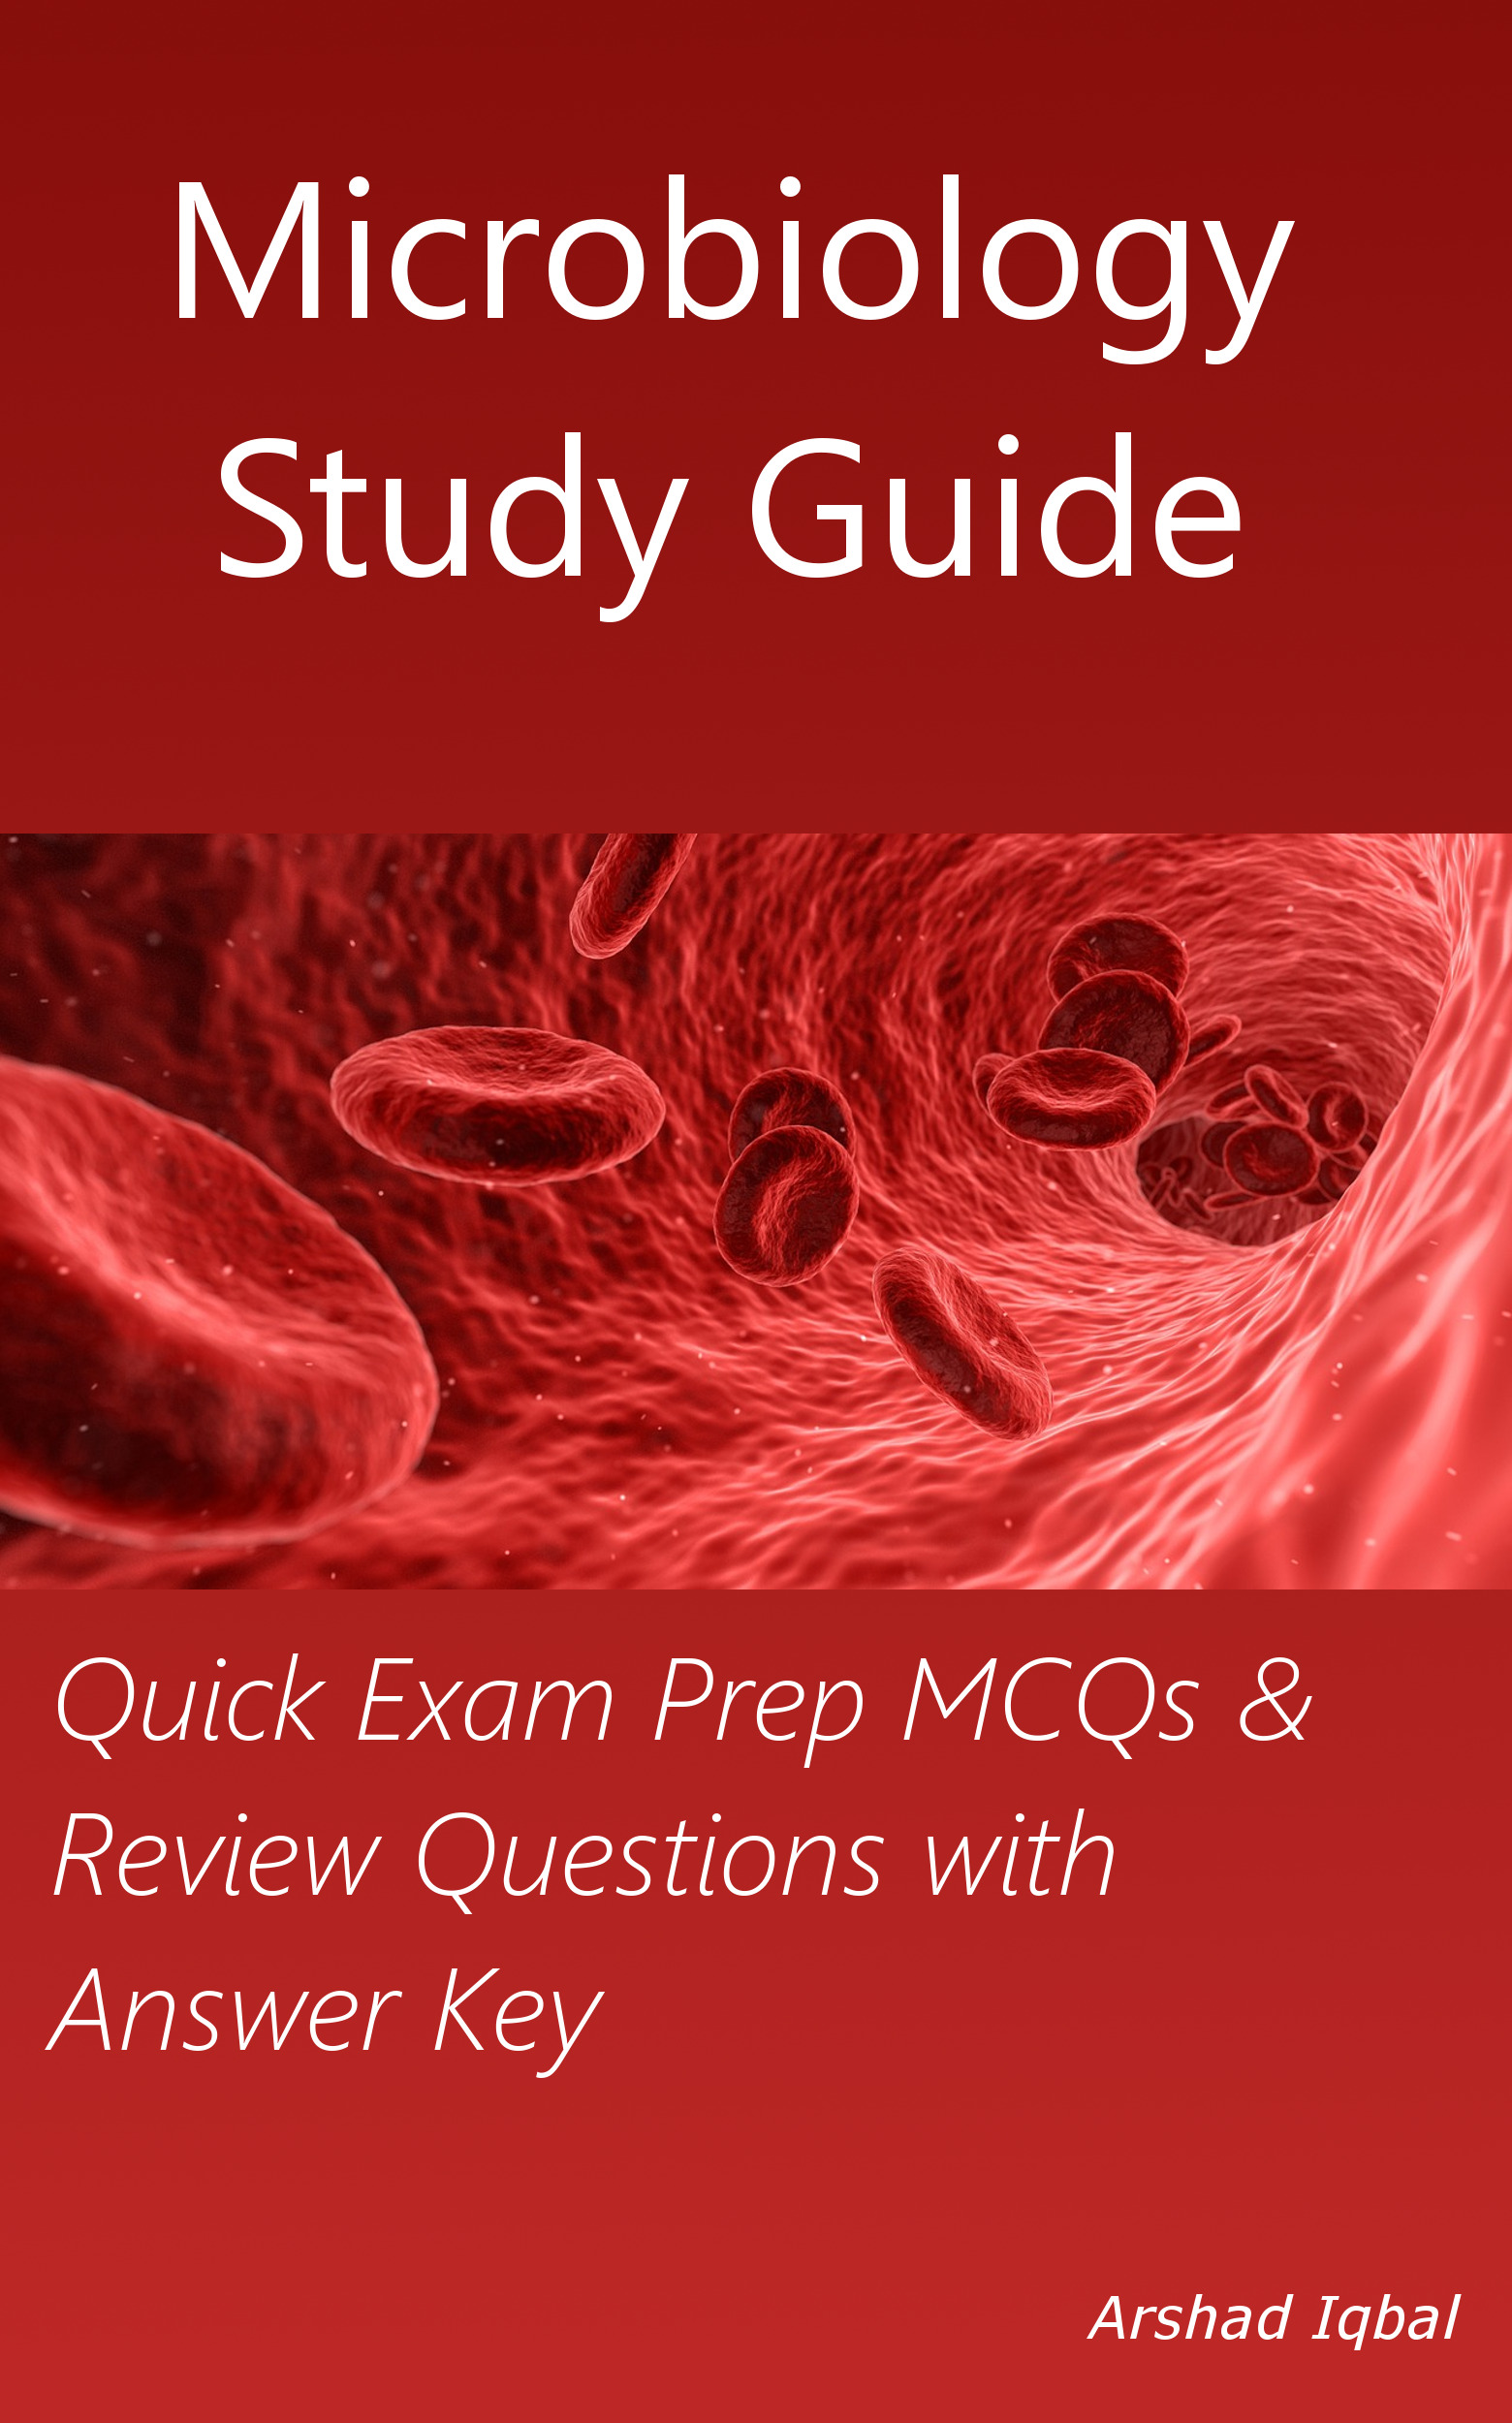 Microbiology Study Guide: Quick Exam Prep MCQs & Review Questions with  Answer Key, an Ebook by Arshad Iqbal